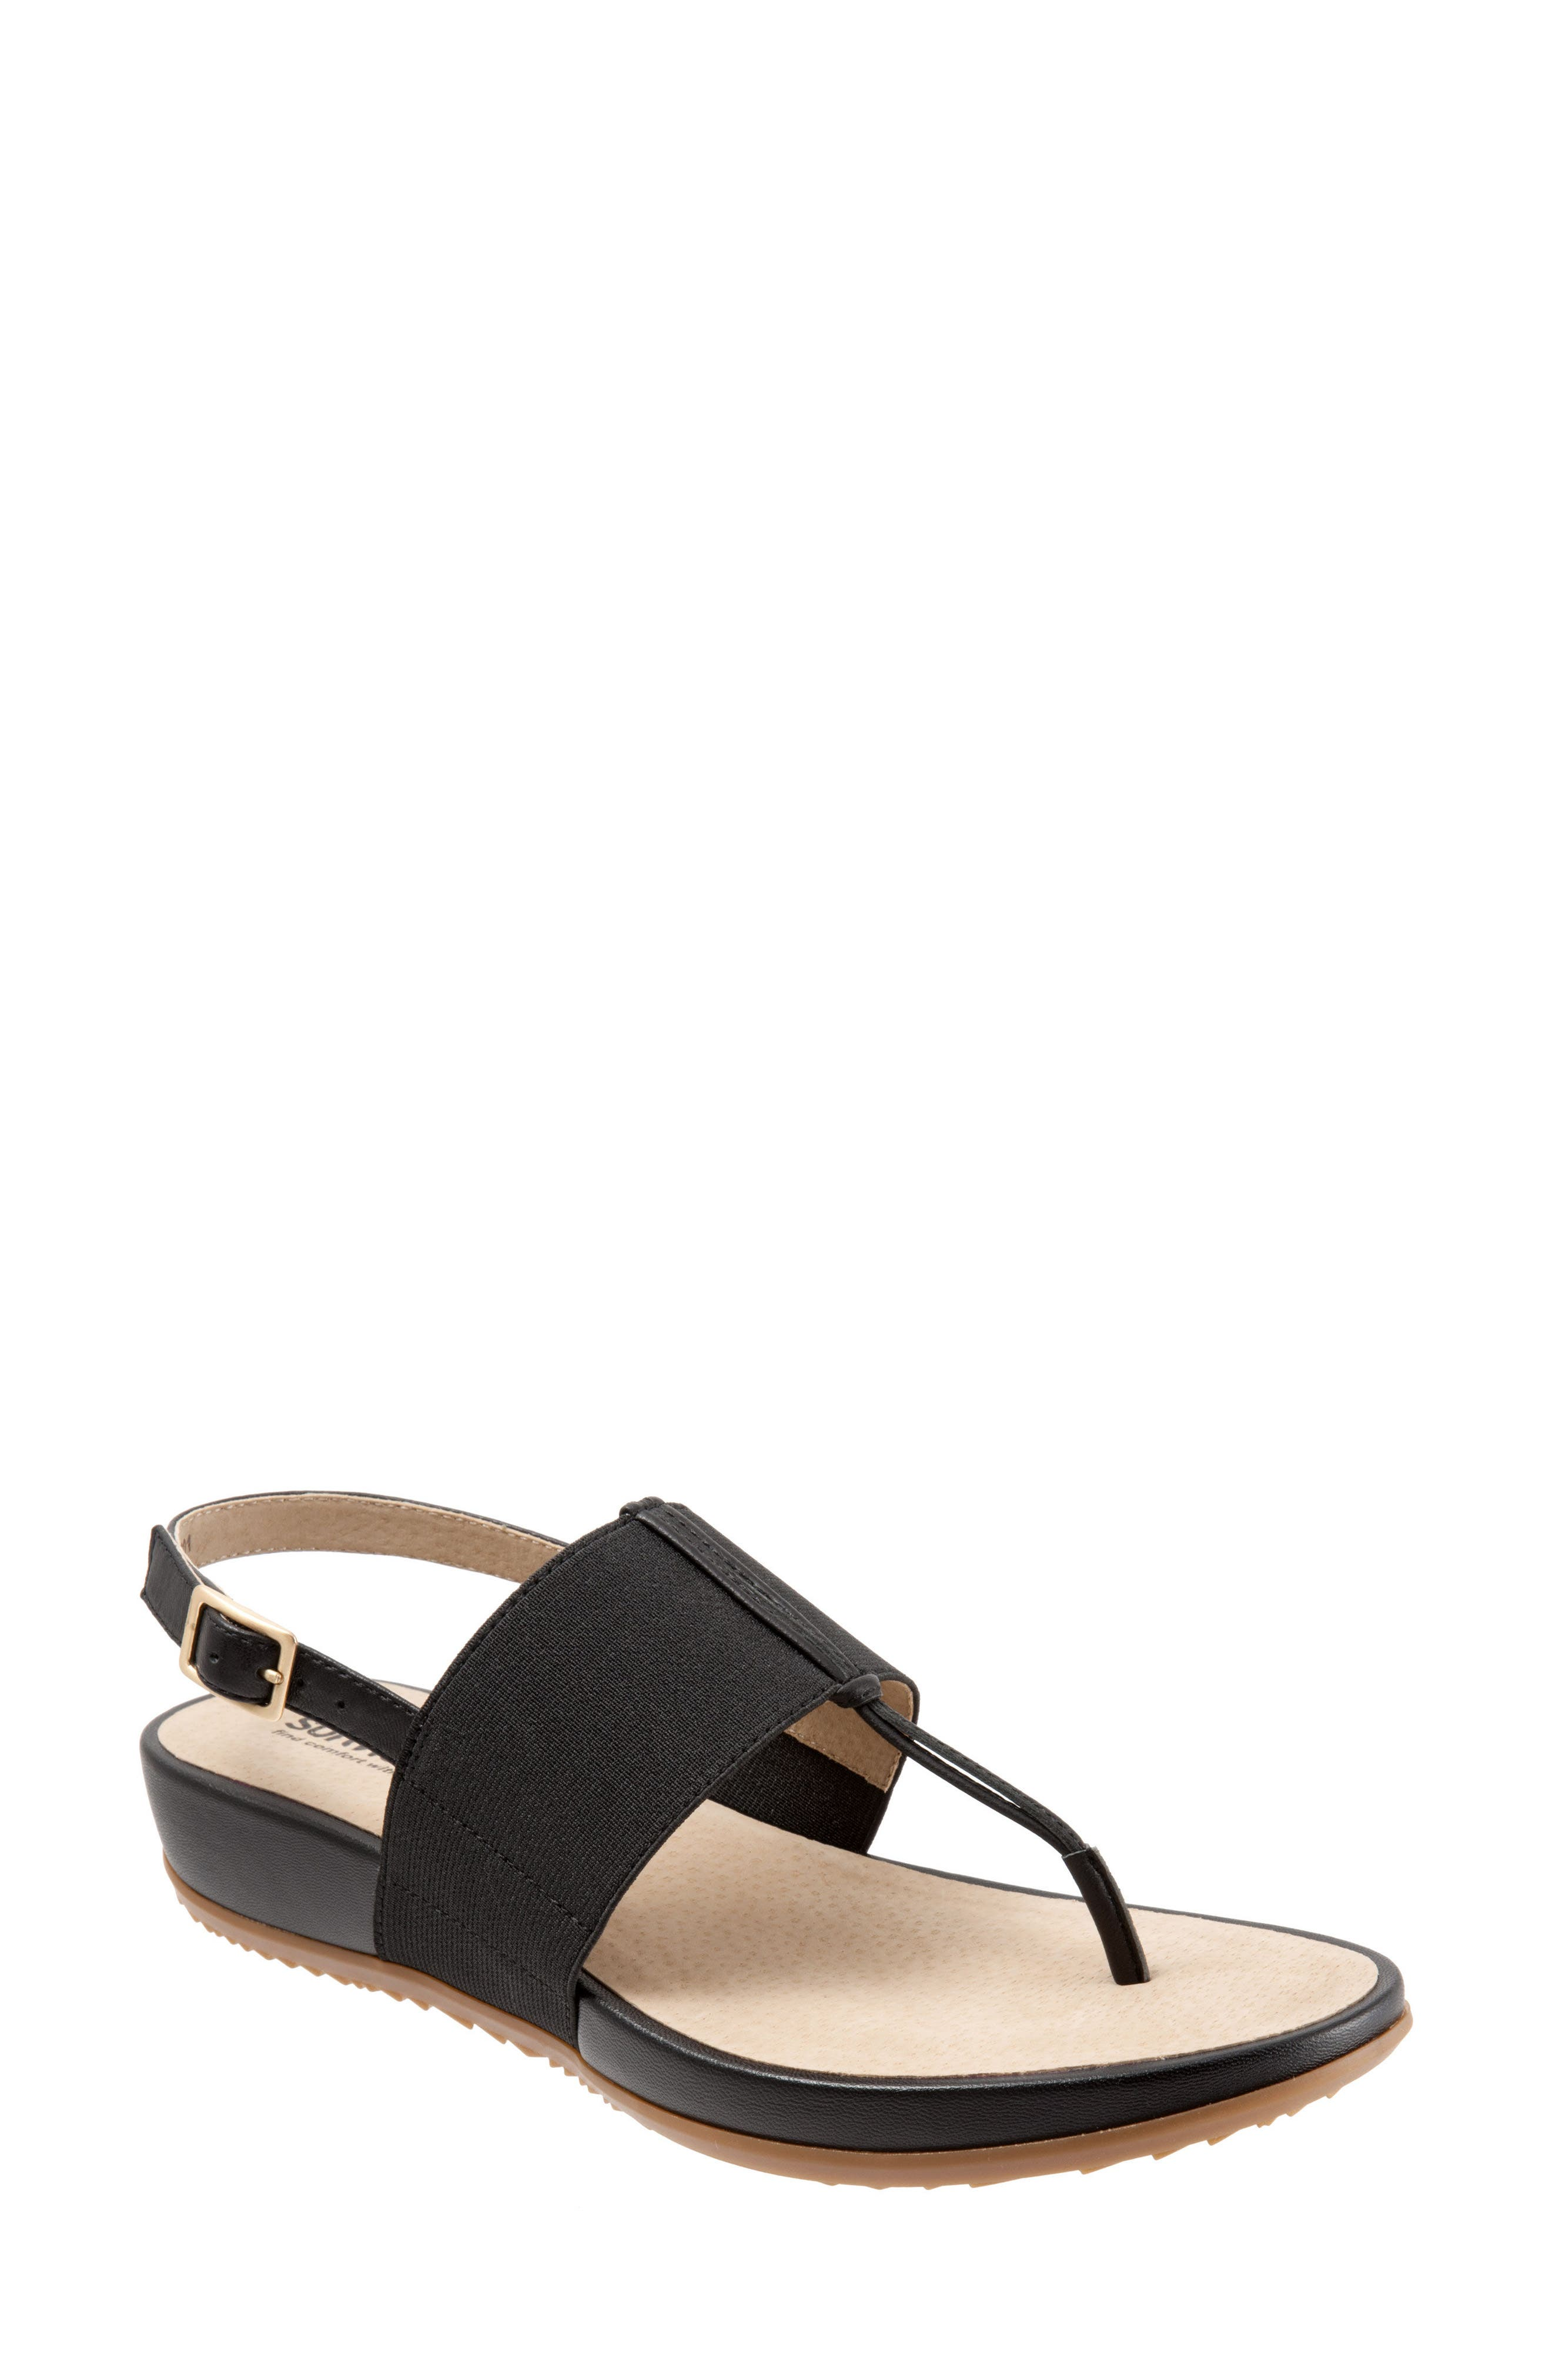 Softwalk Daytona Sandal